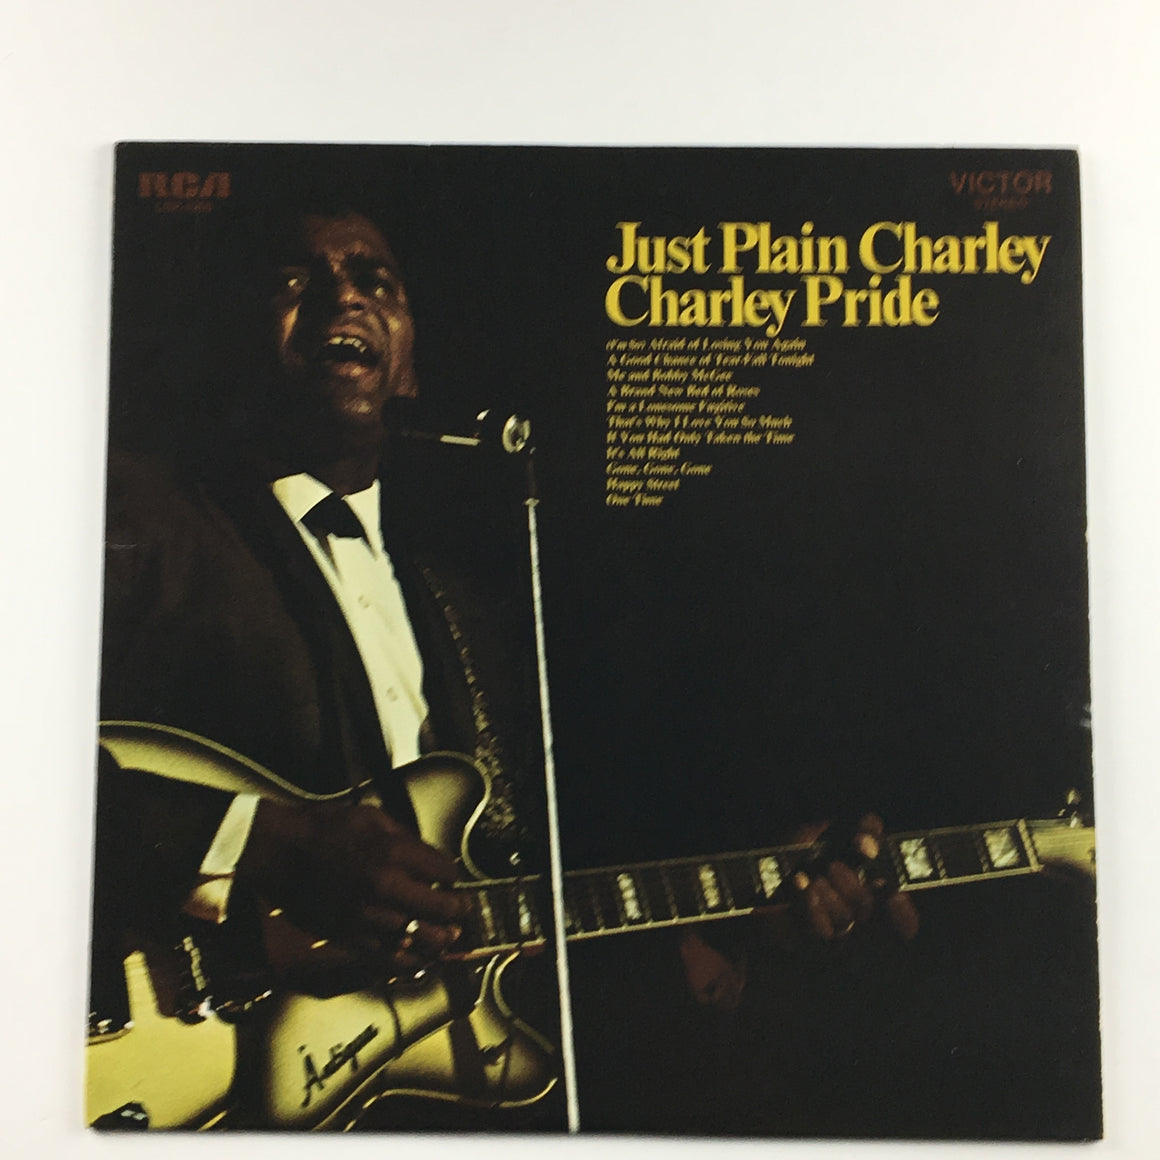 Charley Pride ‎– Just Plain Charley Orig Press Used LP VG+ LSP-4290